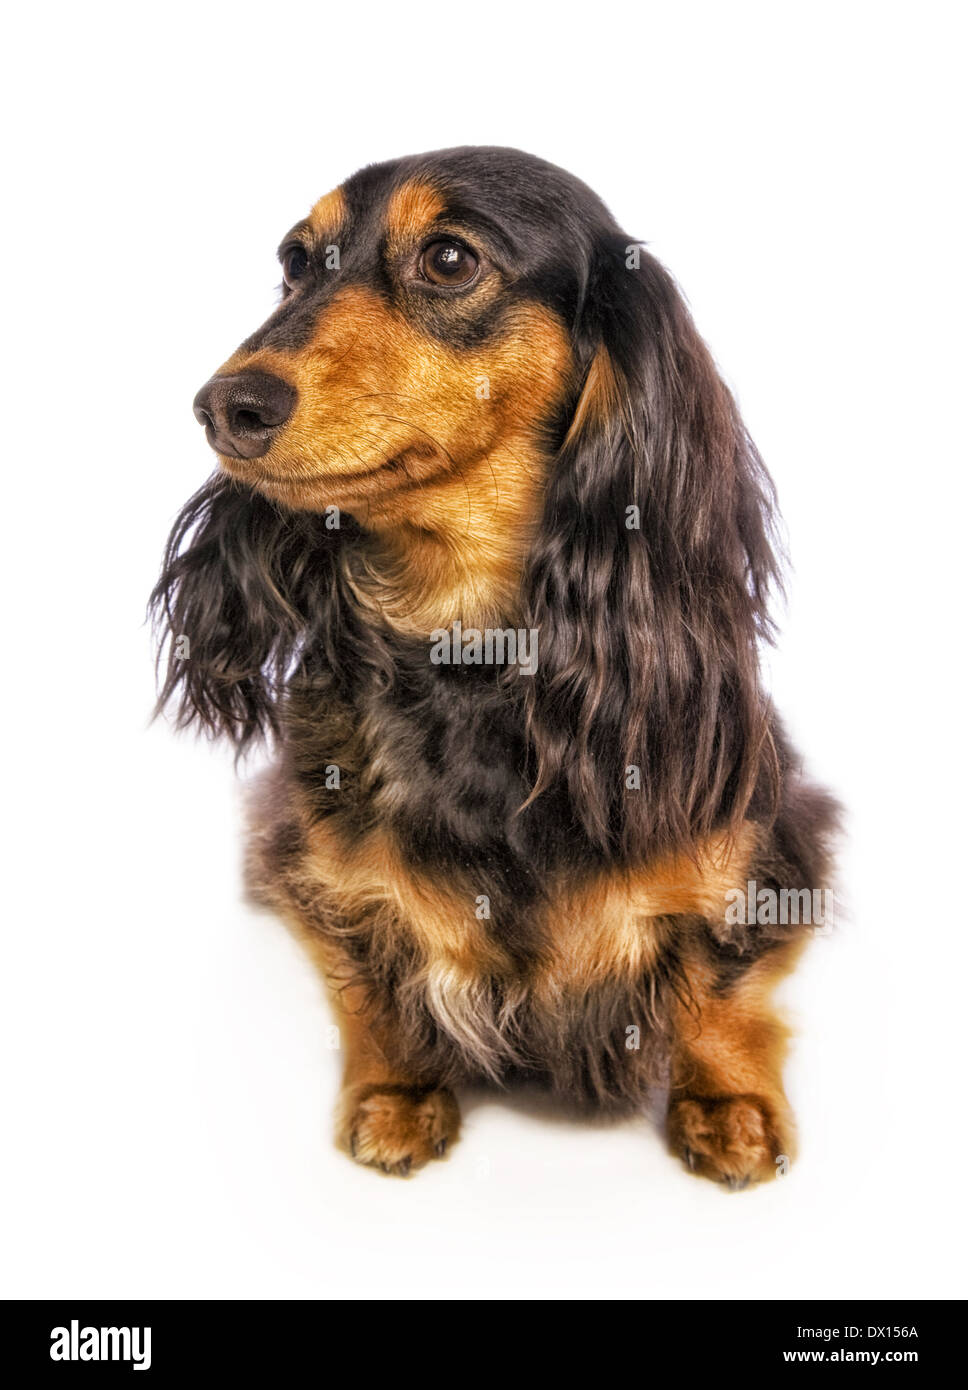 Dachshund dog sitting front view looking to the side isolated on white - Stock Image